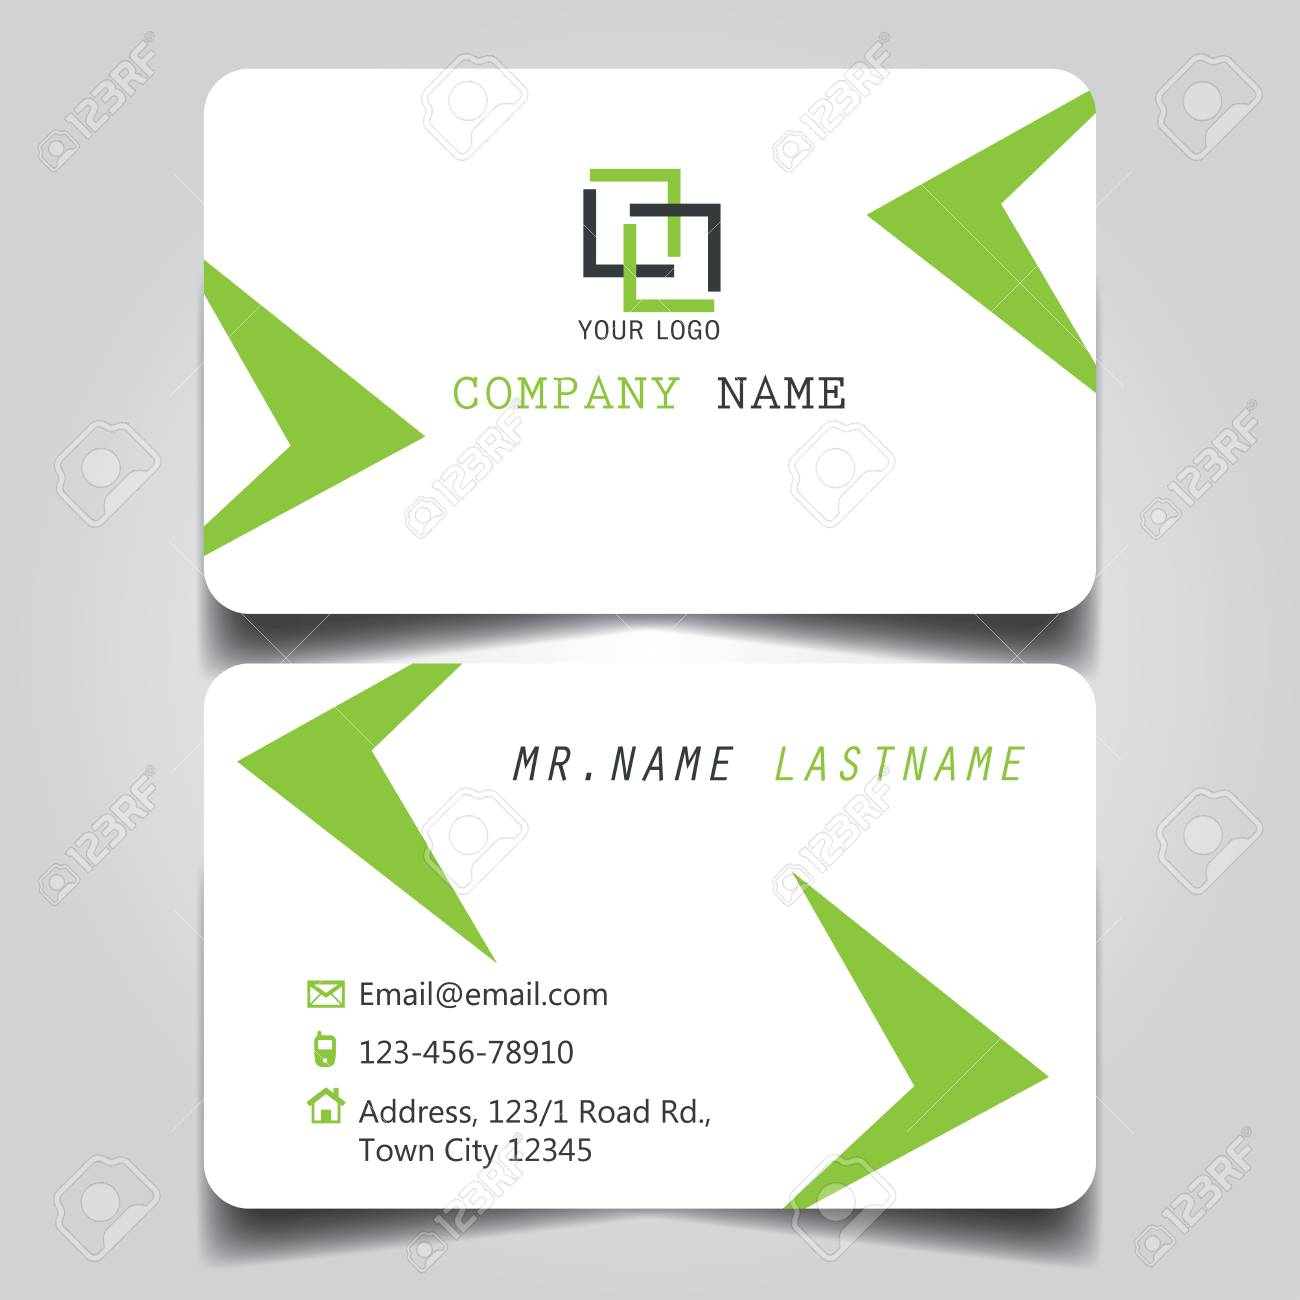 modern green and white name card and business card with creative